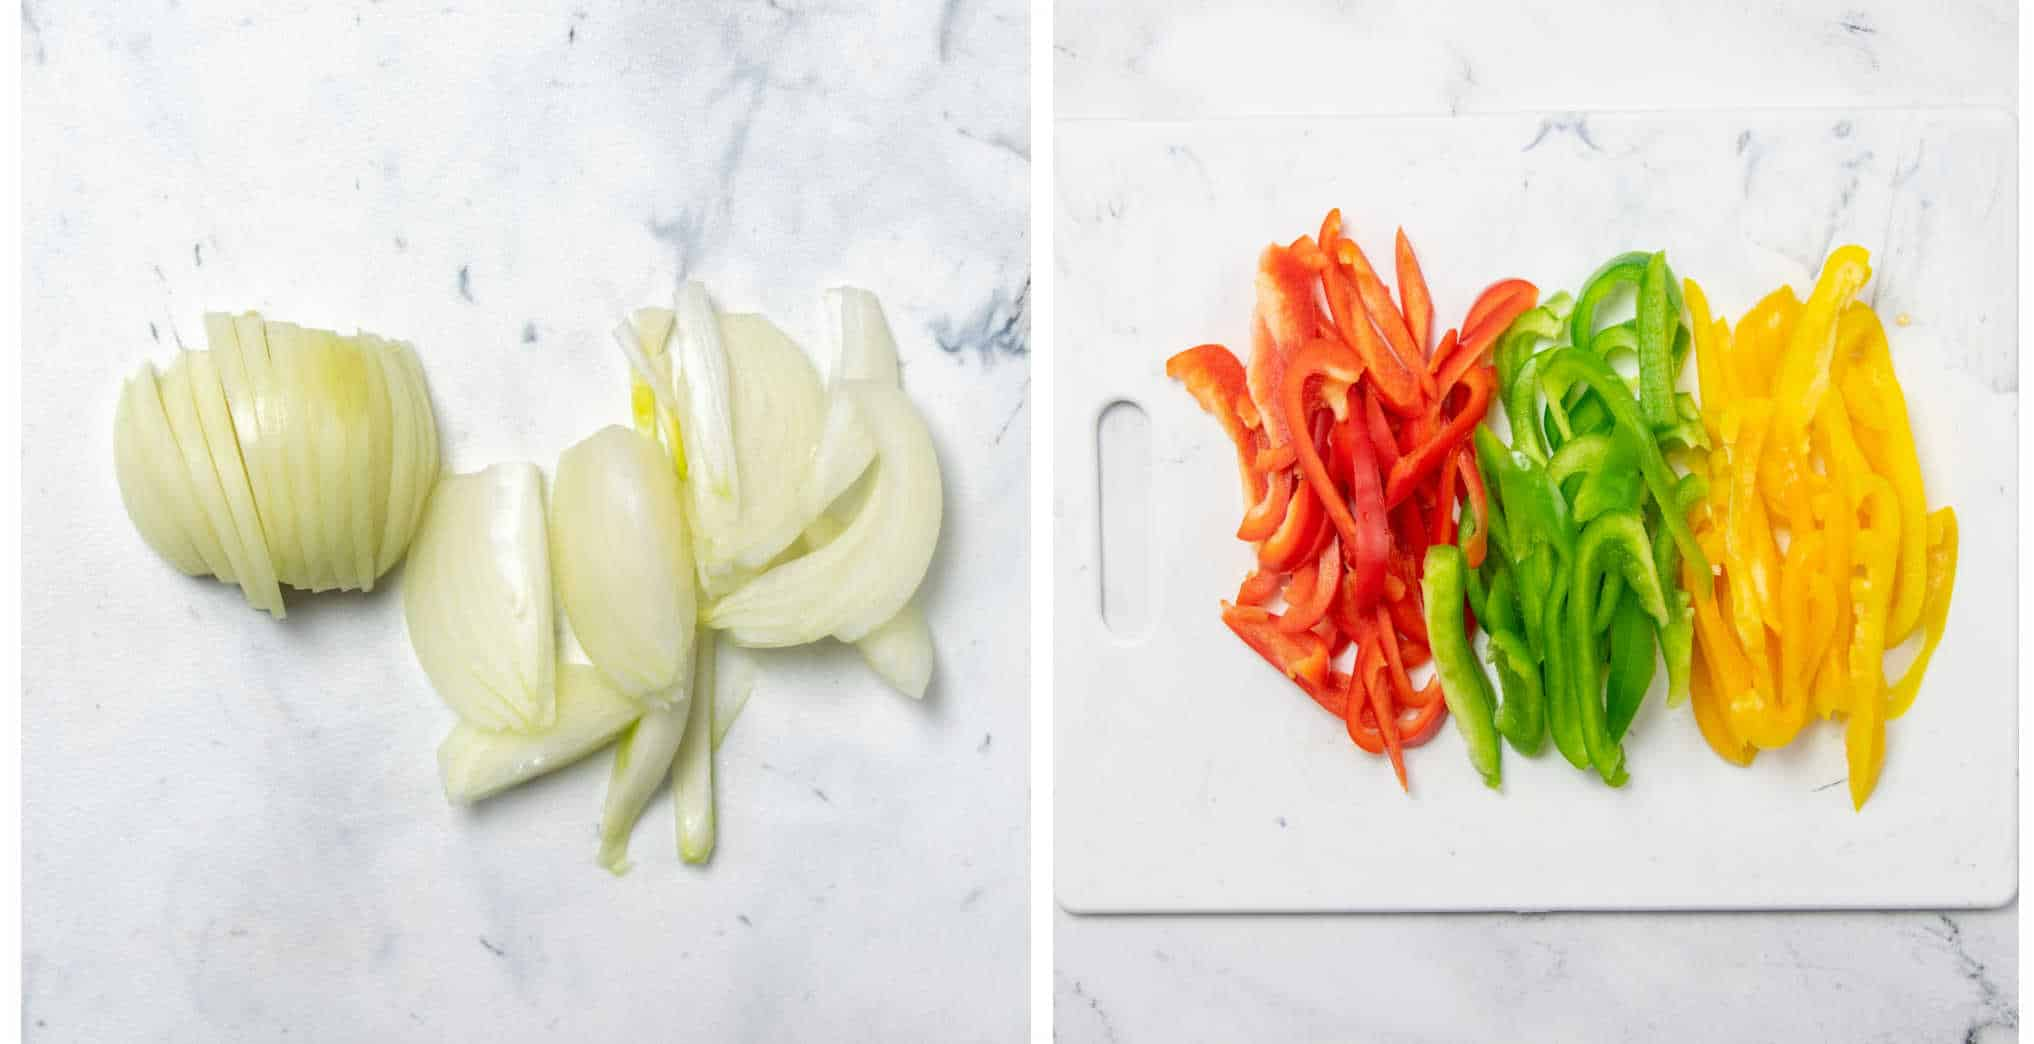 how to cut peppers and onions for fajitas